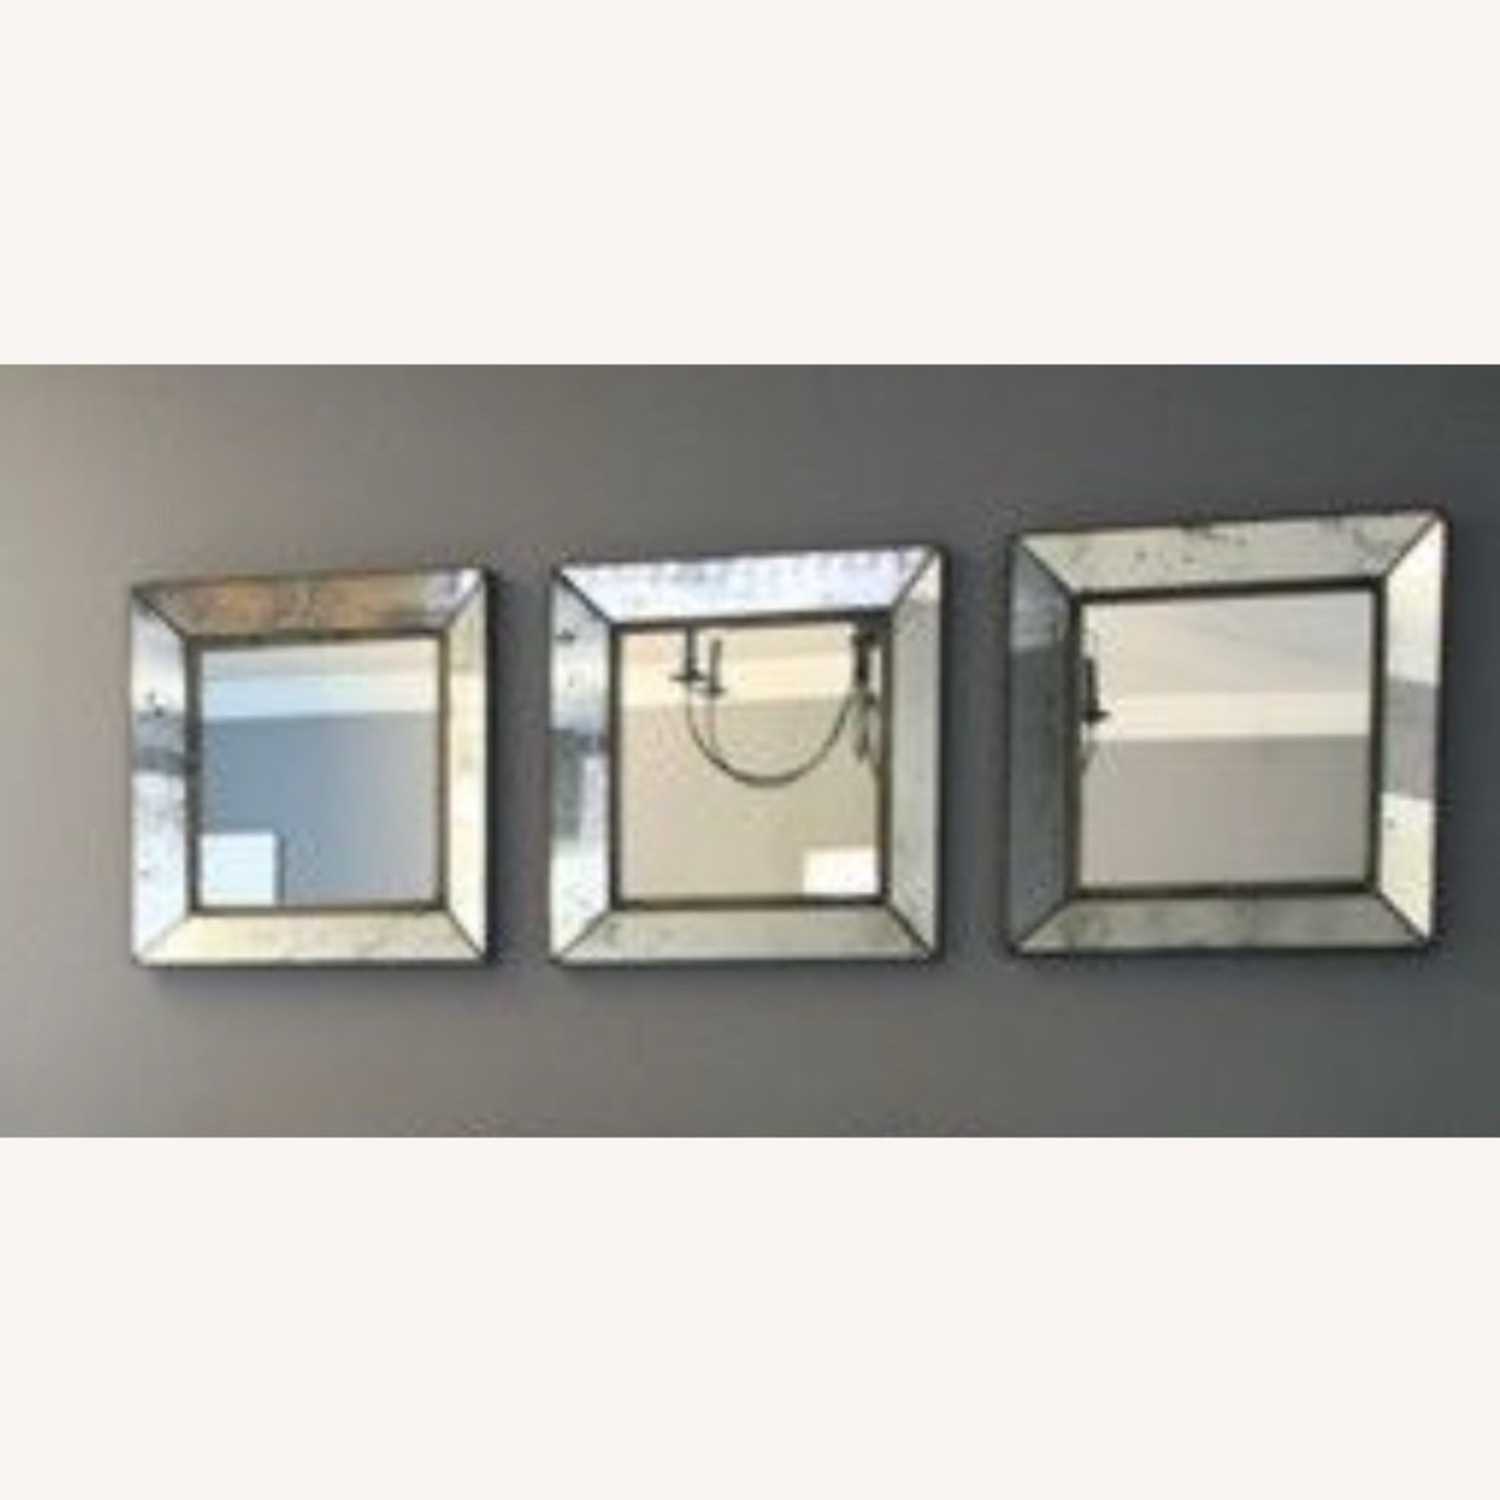 Crate and Barrel Dubois Mirror Set - image-3